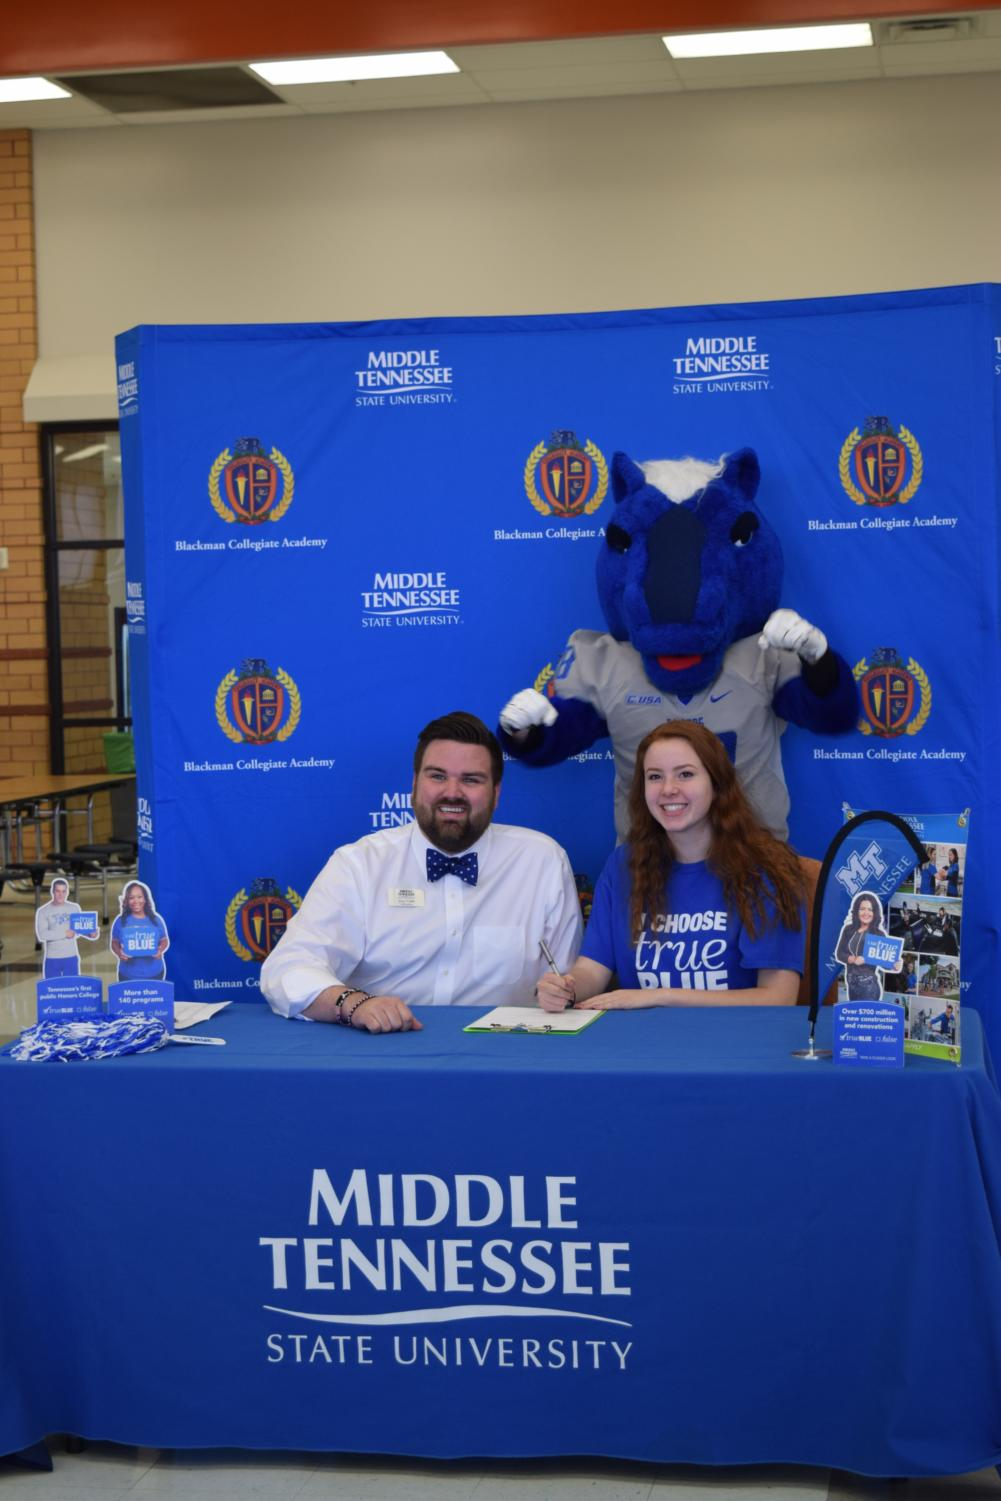 Danielle+Annunziato+will+attend+Middle+Tennessee+State+University+in+the+fall.